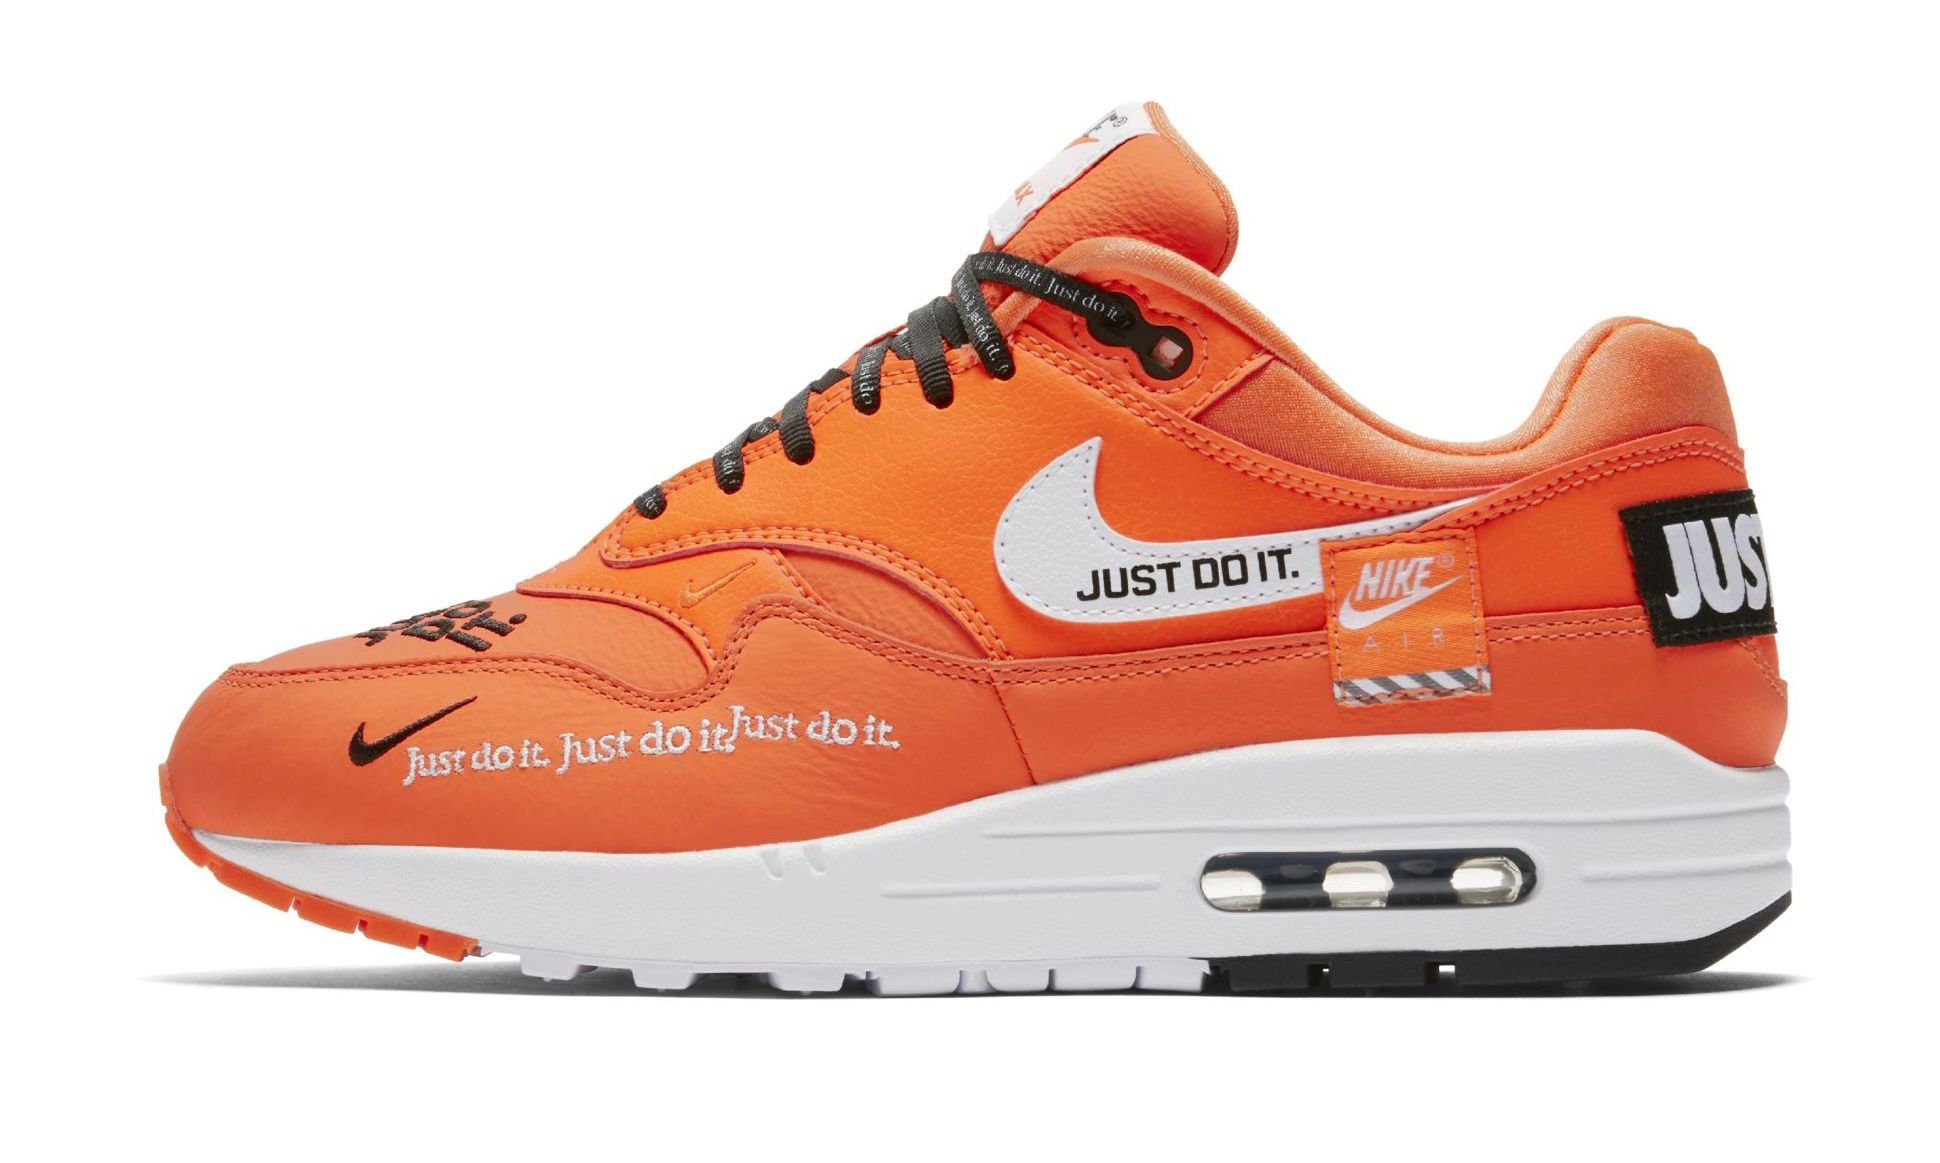 Nike WMNS Air Max 1 Just Do It Total Orange | Nike air max